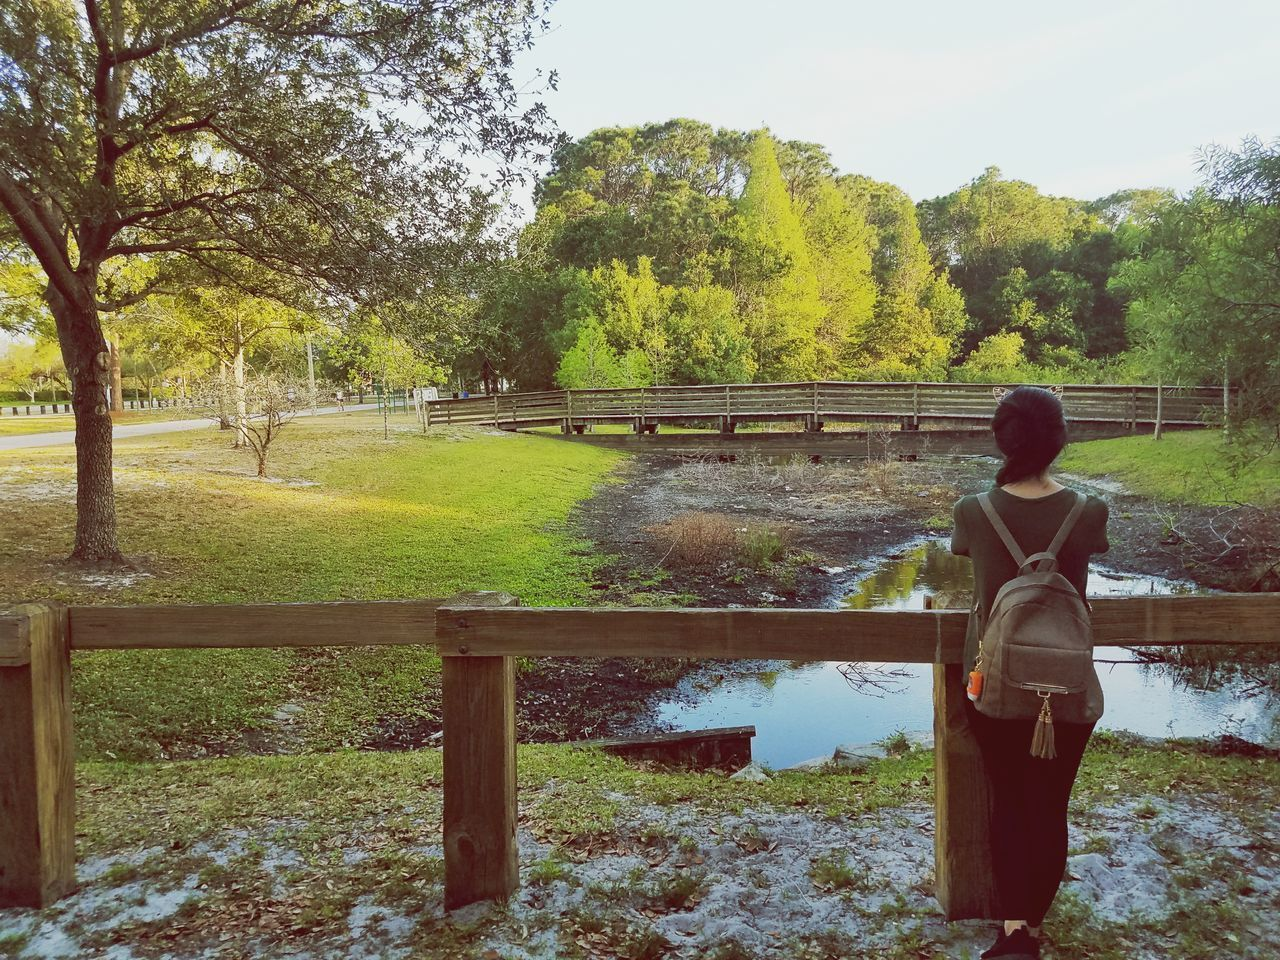 REAR VIEW OF WOMAN STANDING BY TREES IN PARK